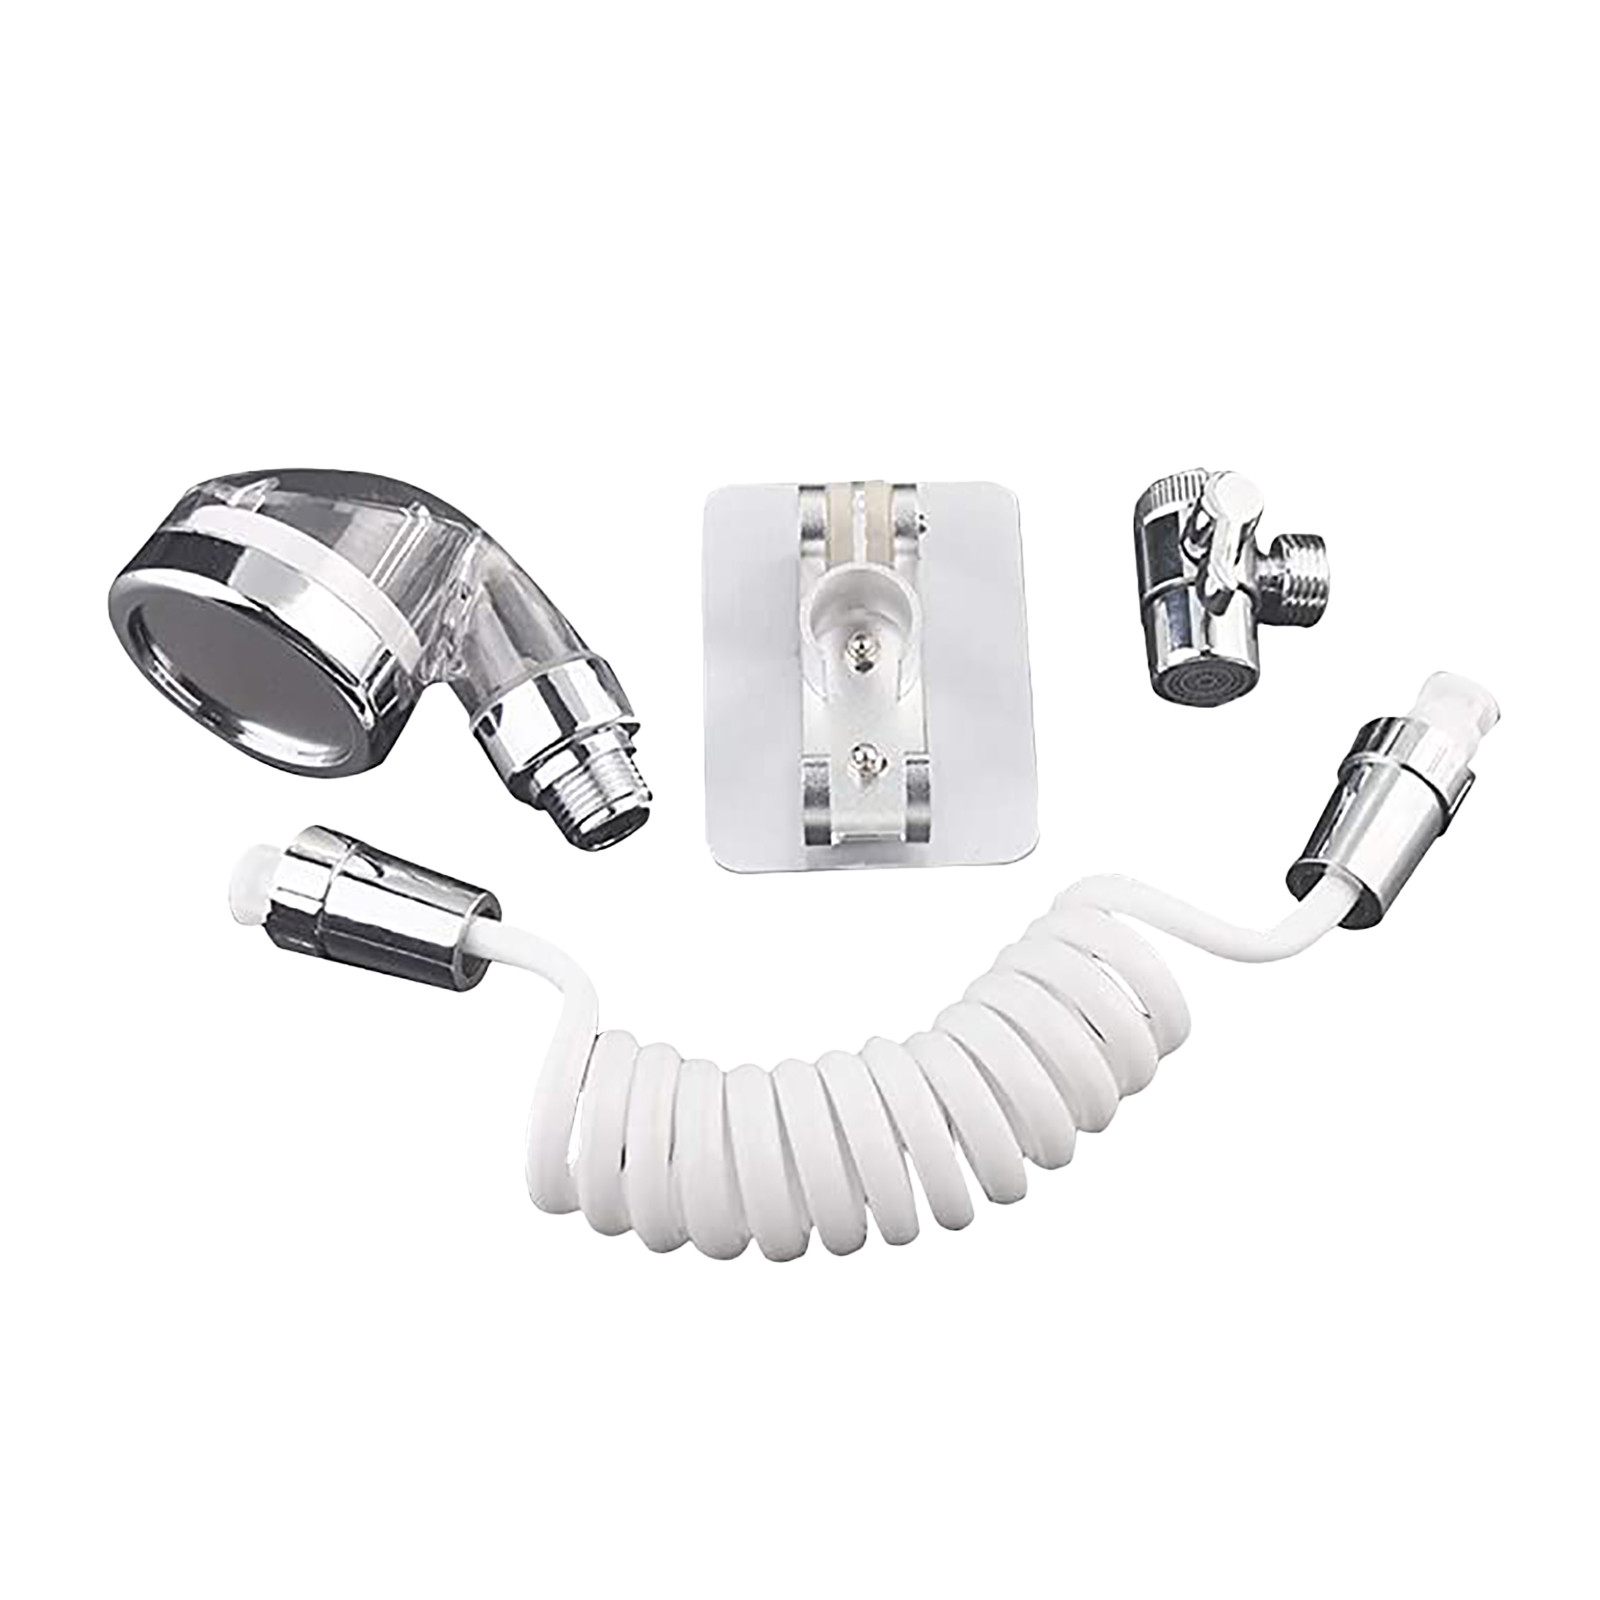 Bathroom Wash Face Basin Water Tap External Shower Head Toilet Hold Filter Flexible Hair Washing Faucet Bathroom Wash Face Basin Water Tap External Shower Head Toilet Hold Filter Flexible Hair Washing Faucet Rinser Extension Set #40